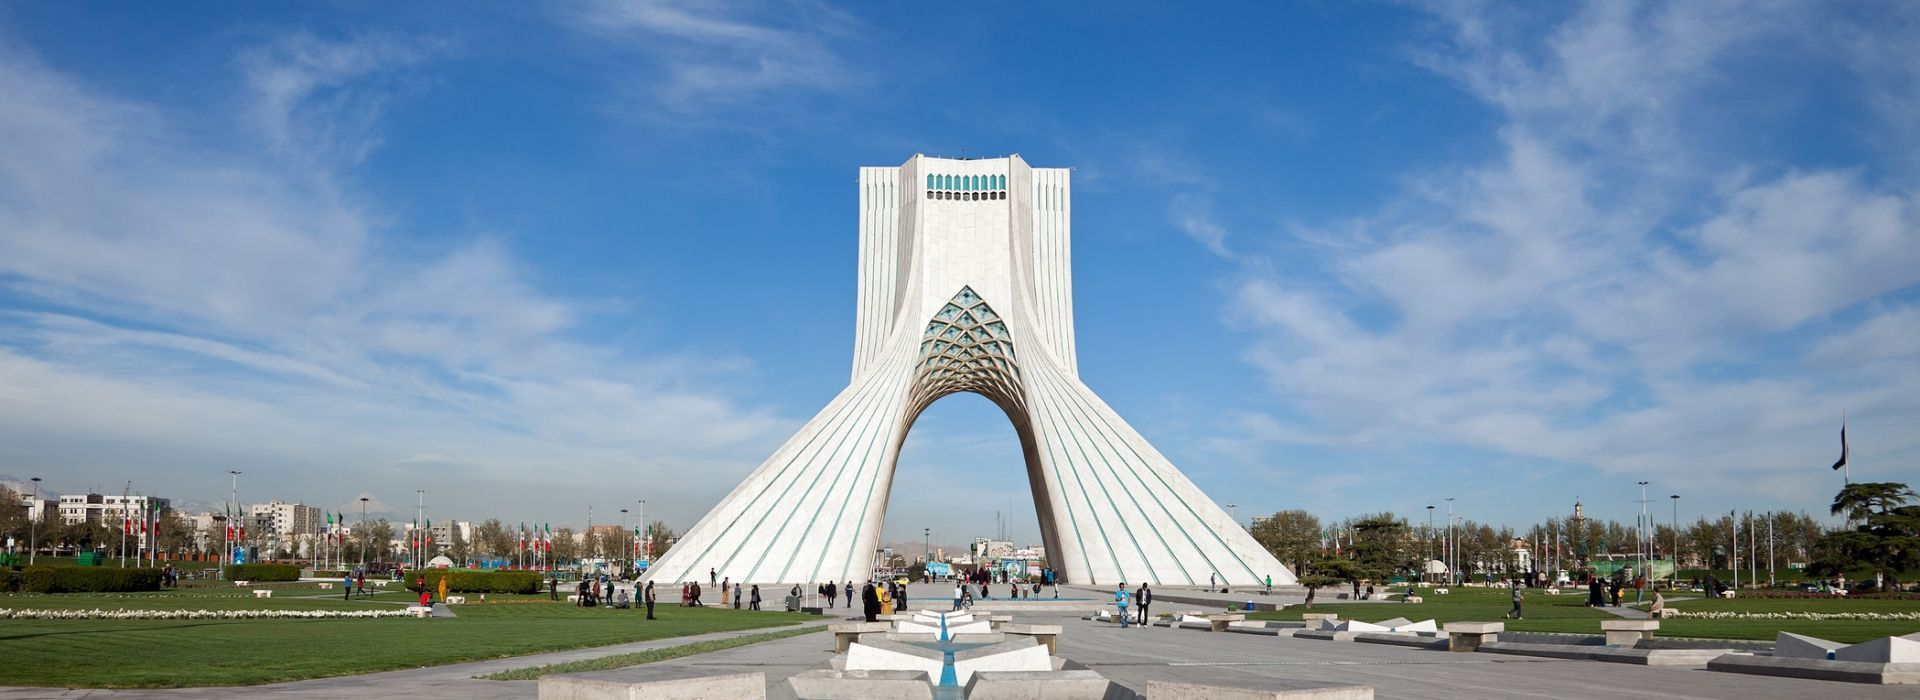 Air tours, road trips and transfers in Tehran